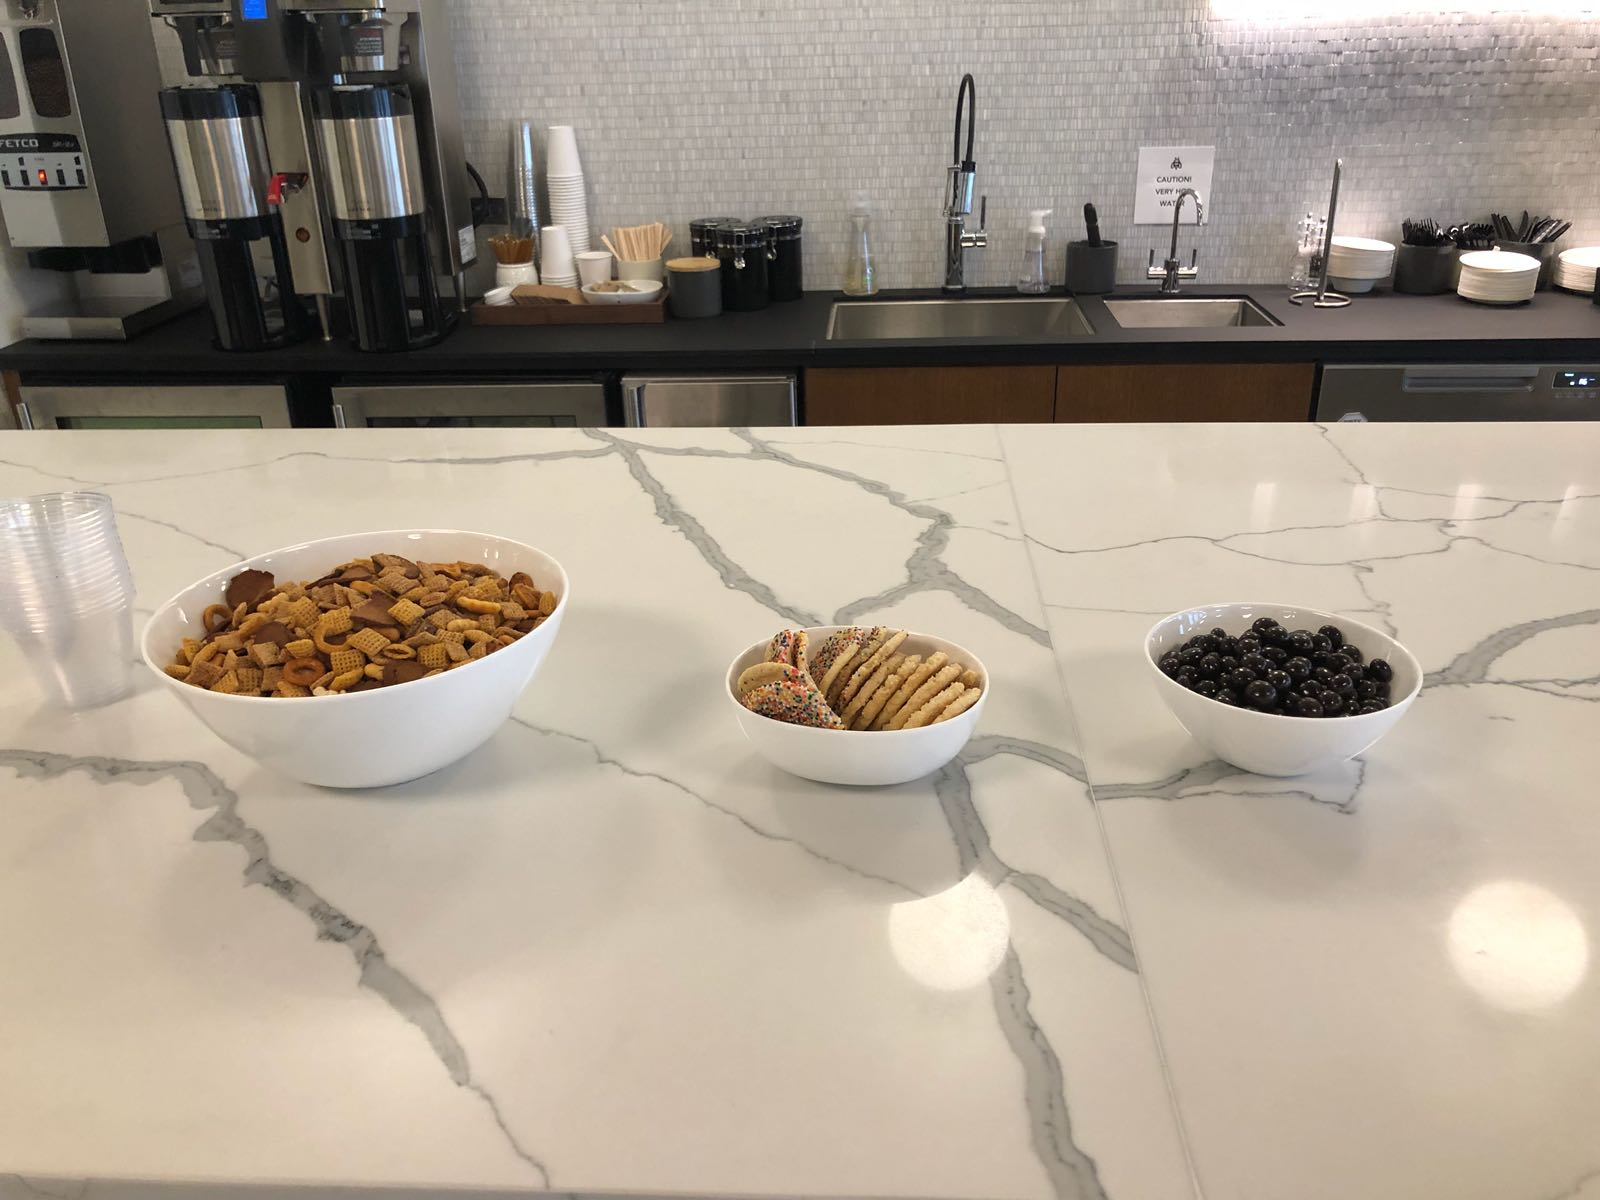 Orlando Bloggers June 2018 Meetup snacks from Industrious Orlando